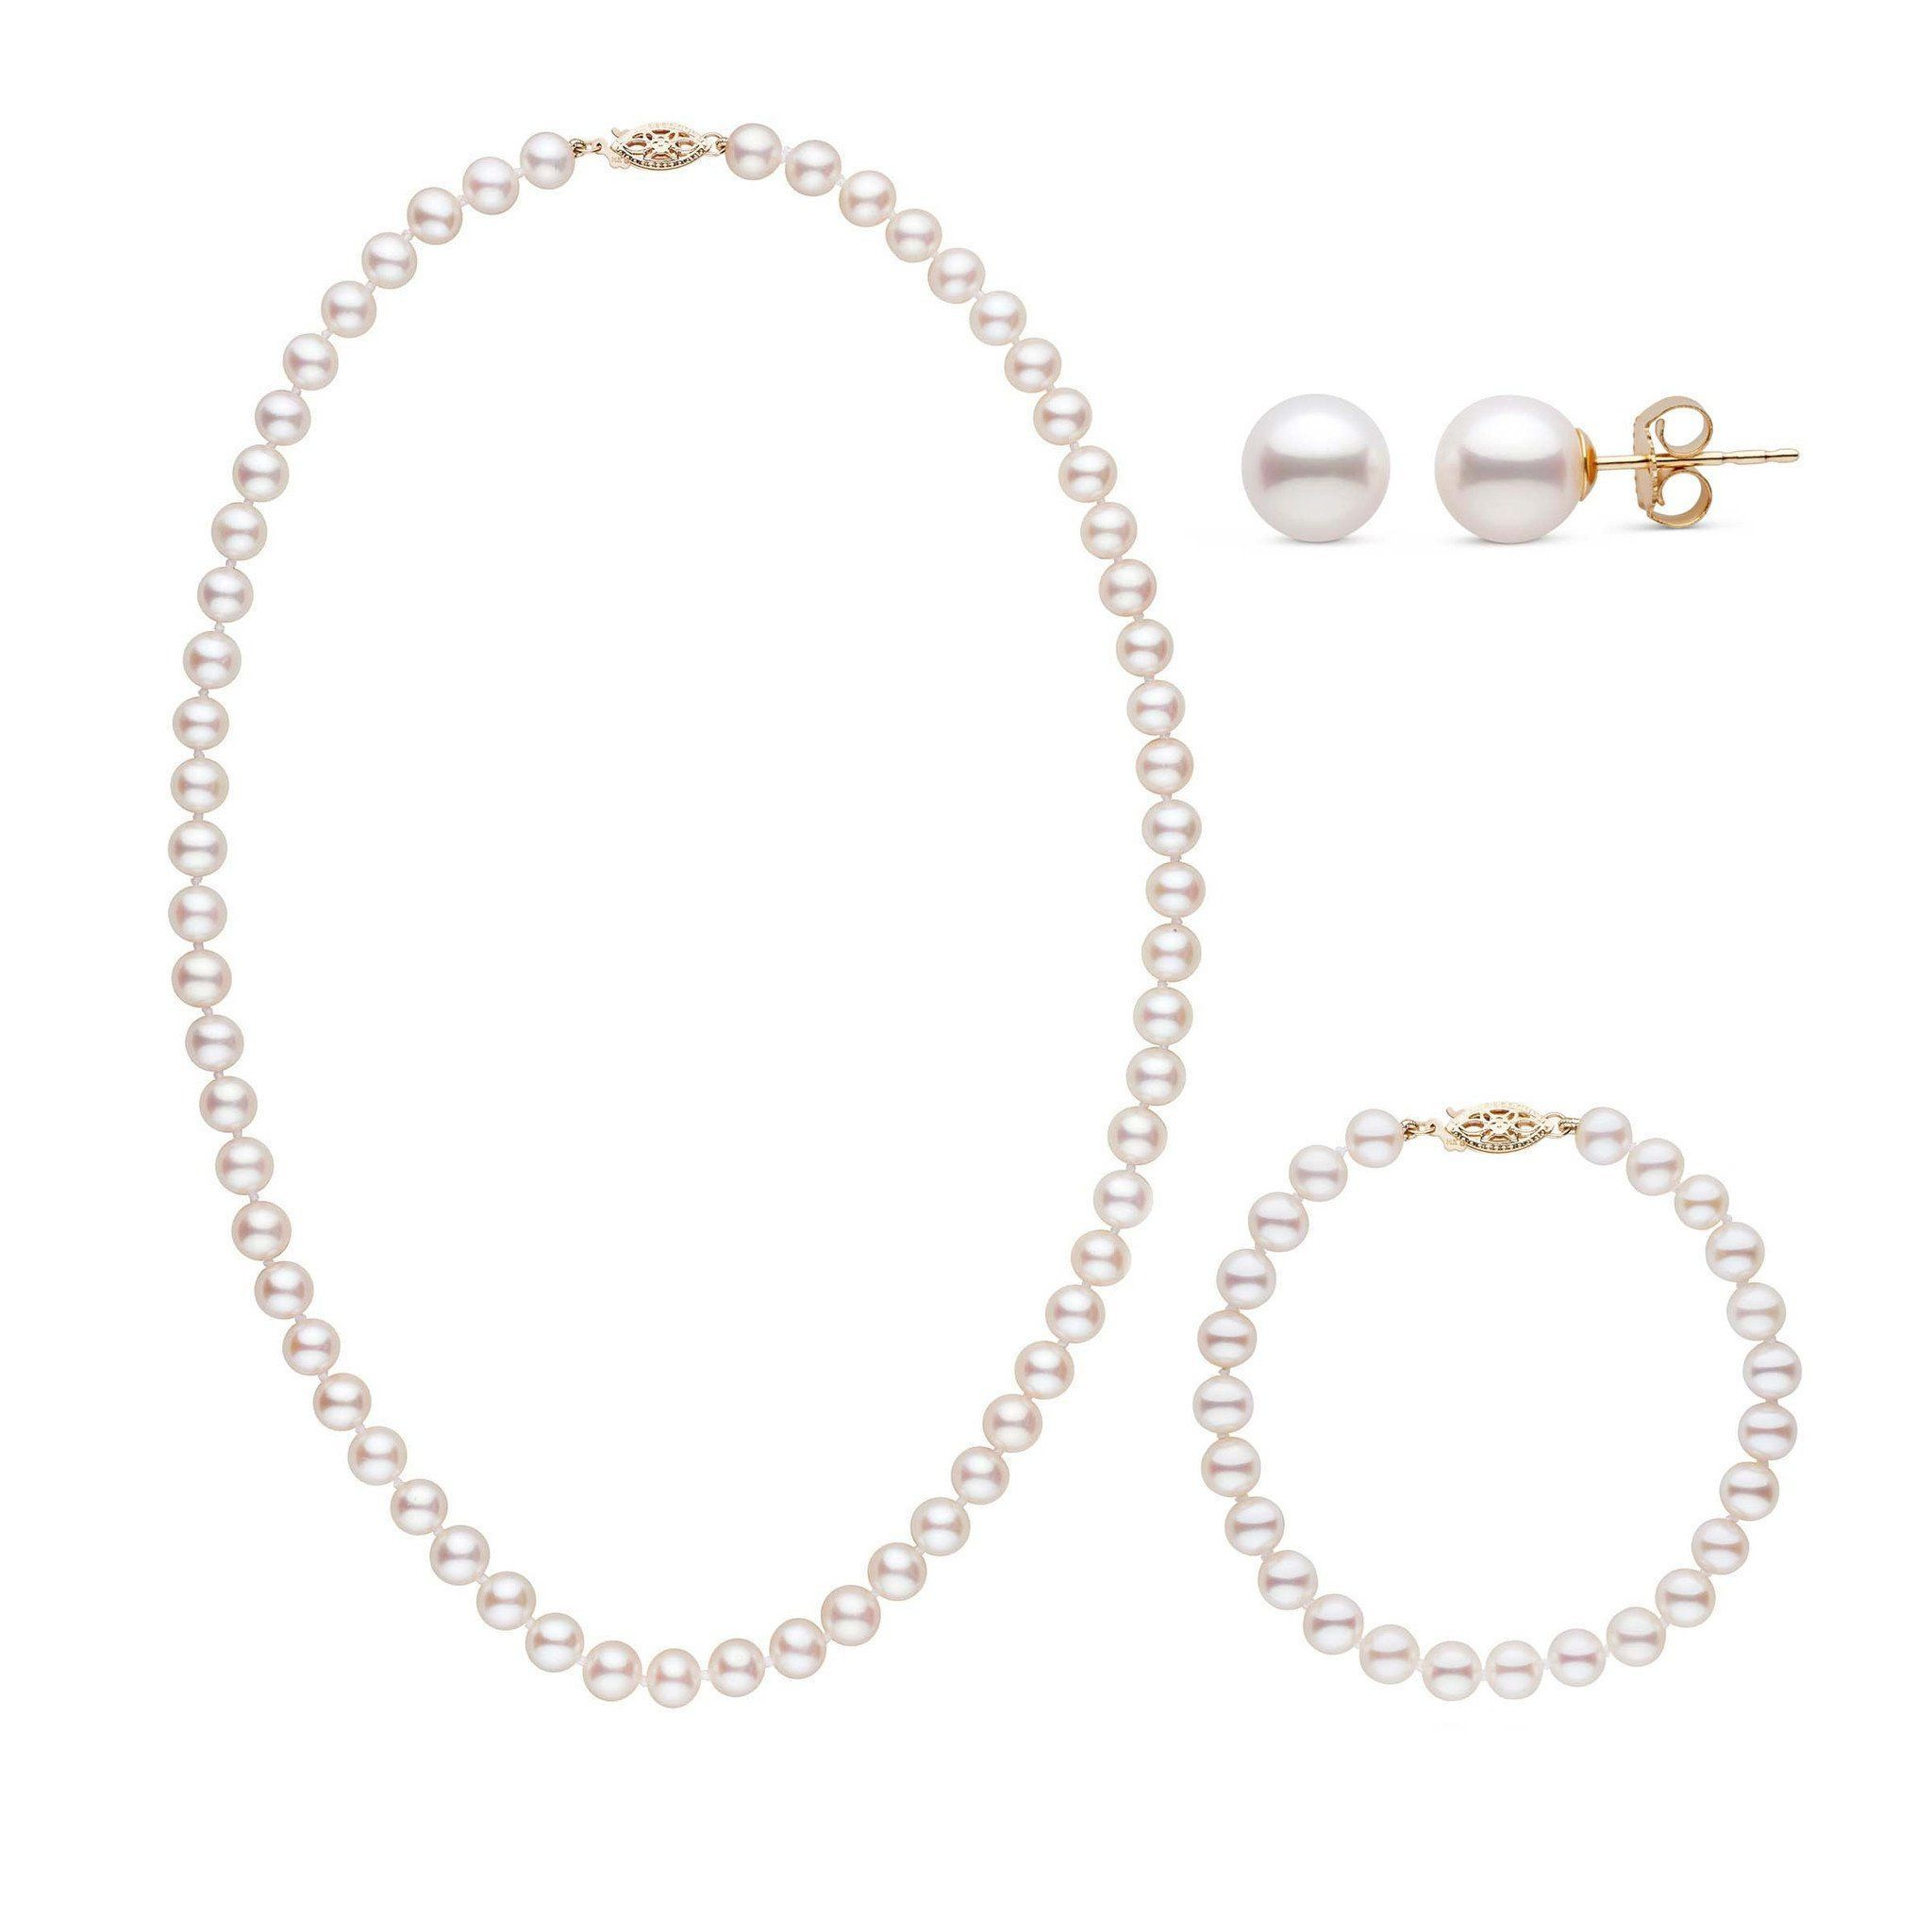 18 Inch 3 Piece Set of 6.5-7.0 mm AAA White Freshwater Pearls